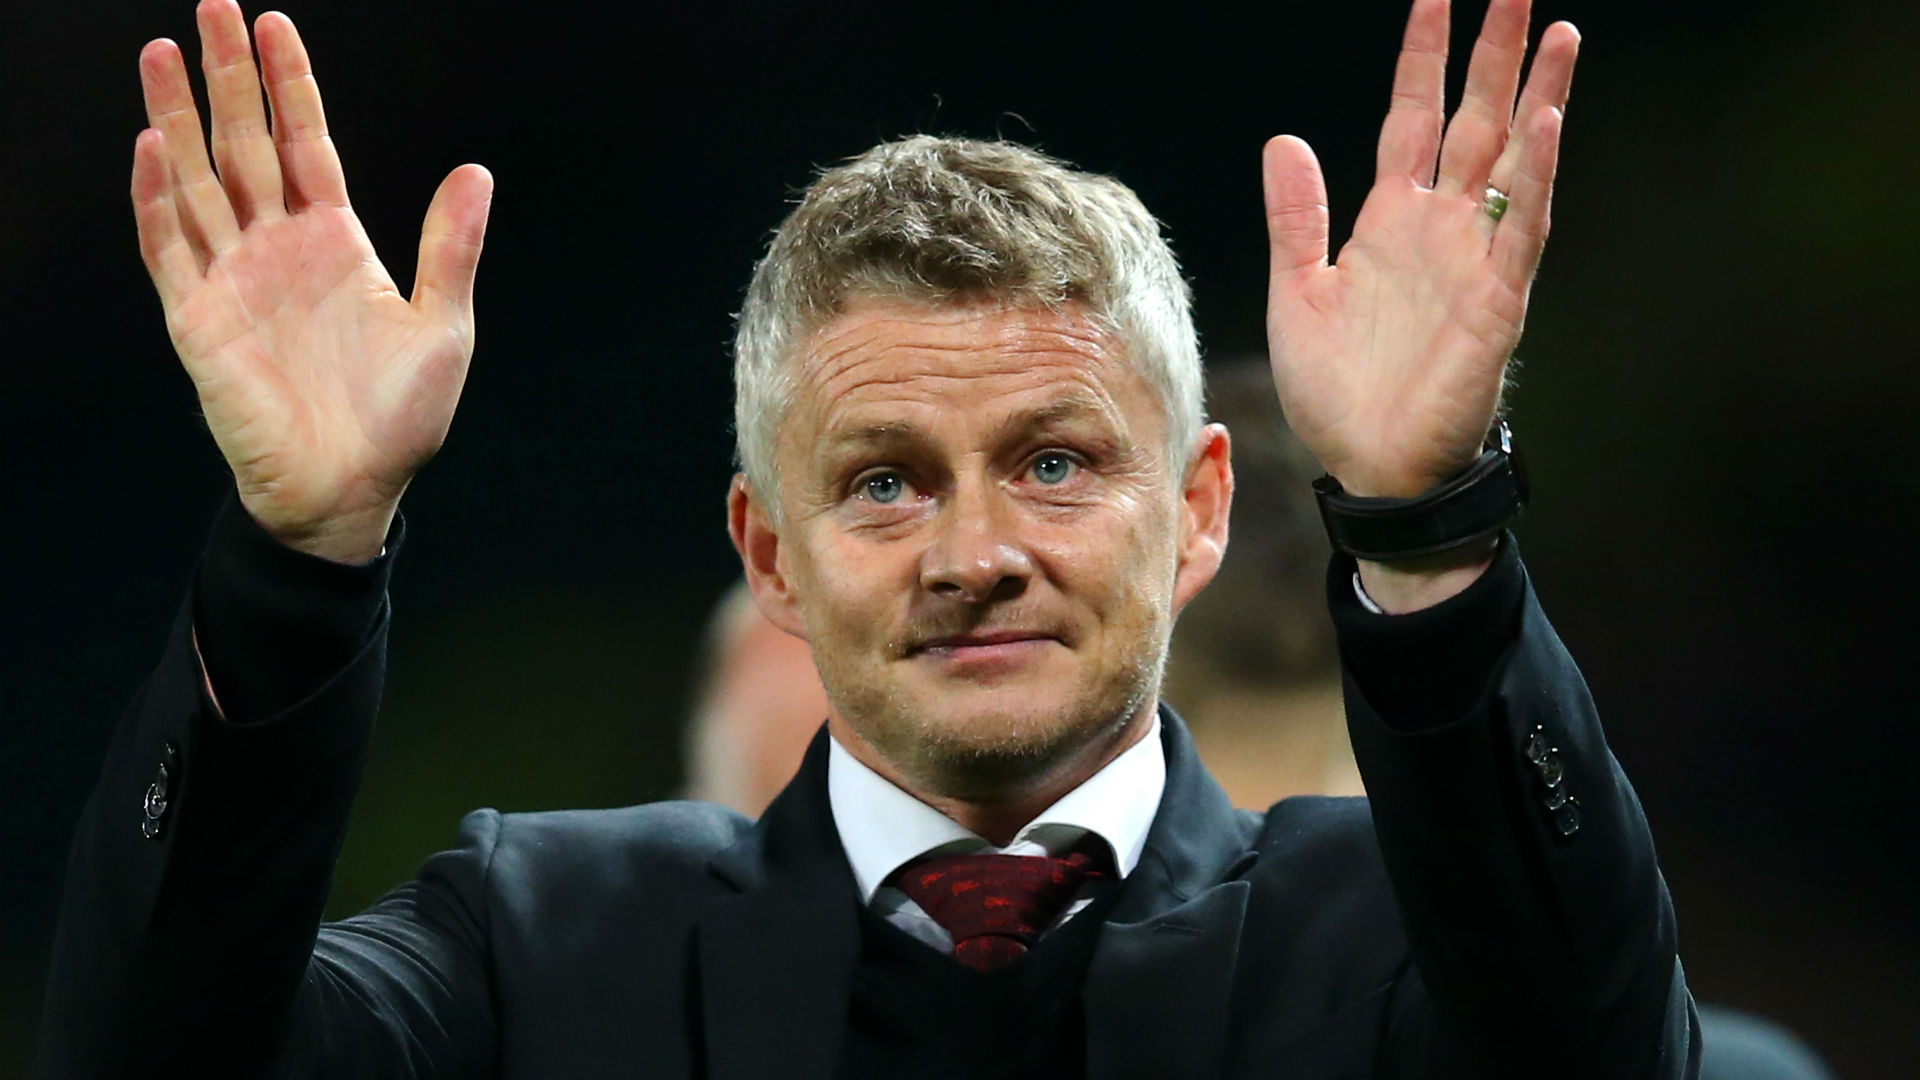 Solskjaer: Manchester United fans know patience is needed